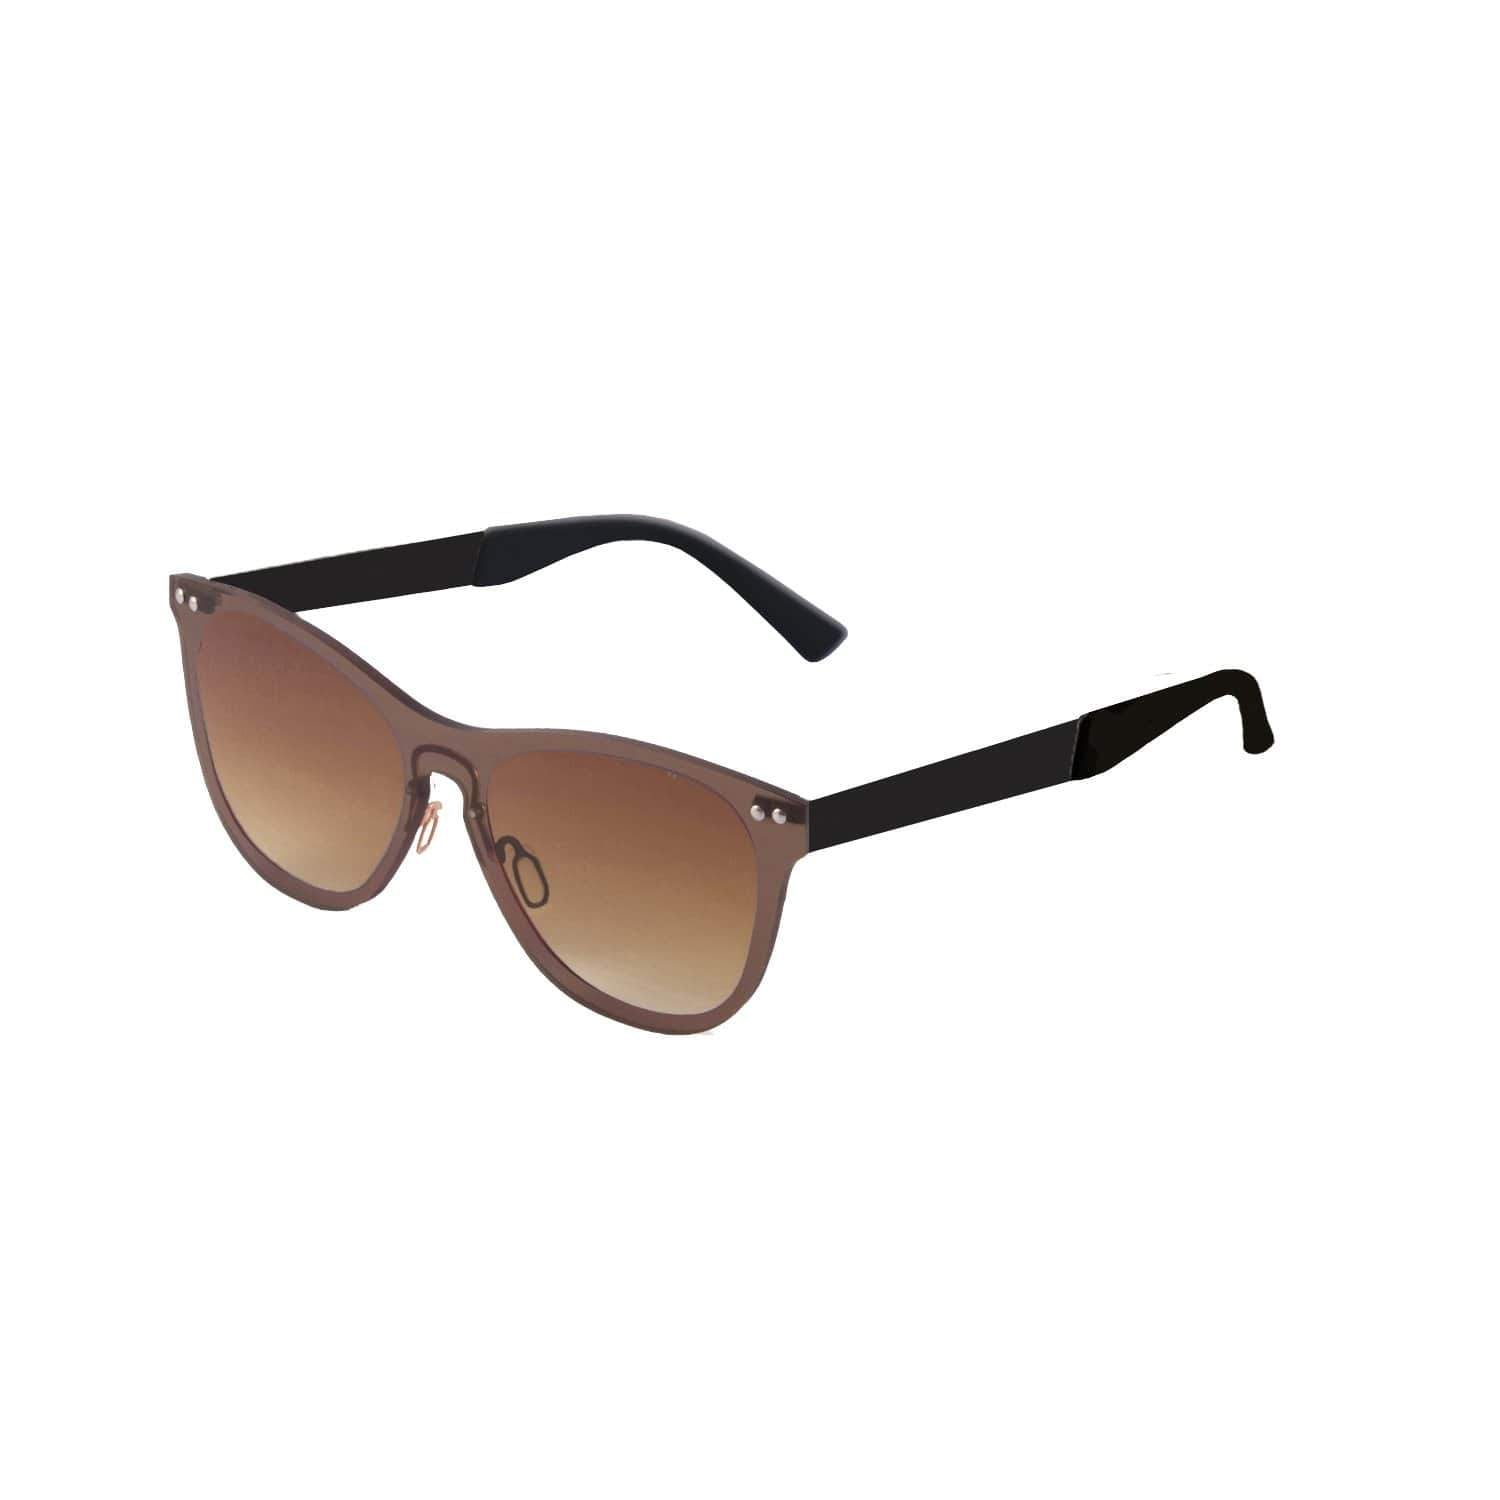 Ocean Sunglasses Accessories Sunglasses brown-1 / NOSIZE Ocean Sunglasses - FLORENCIA